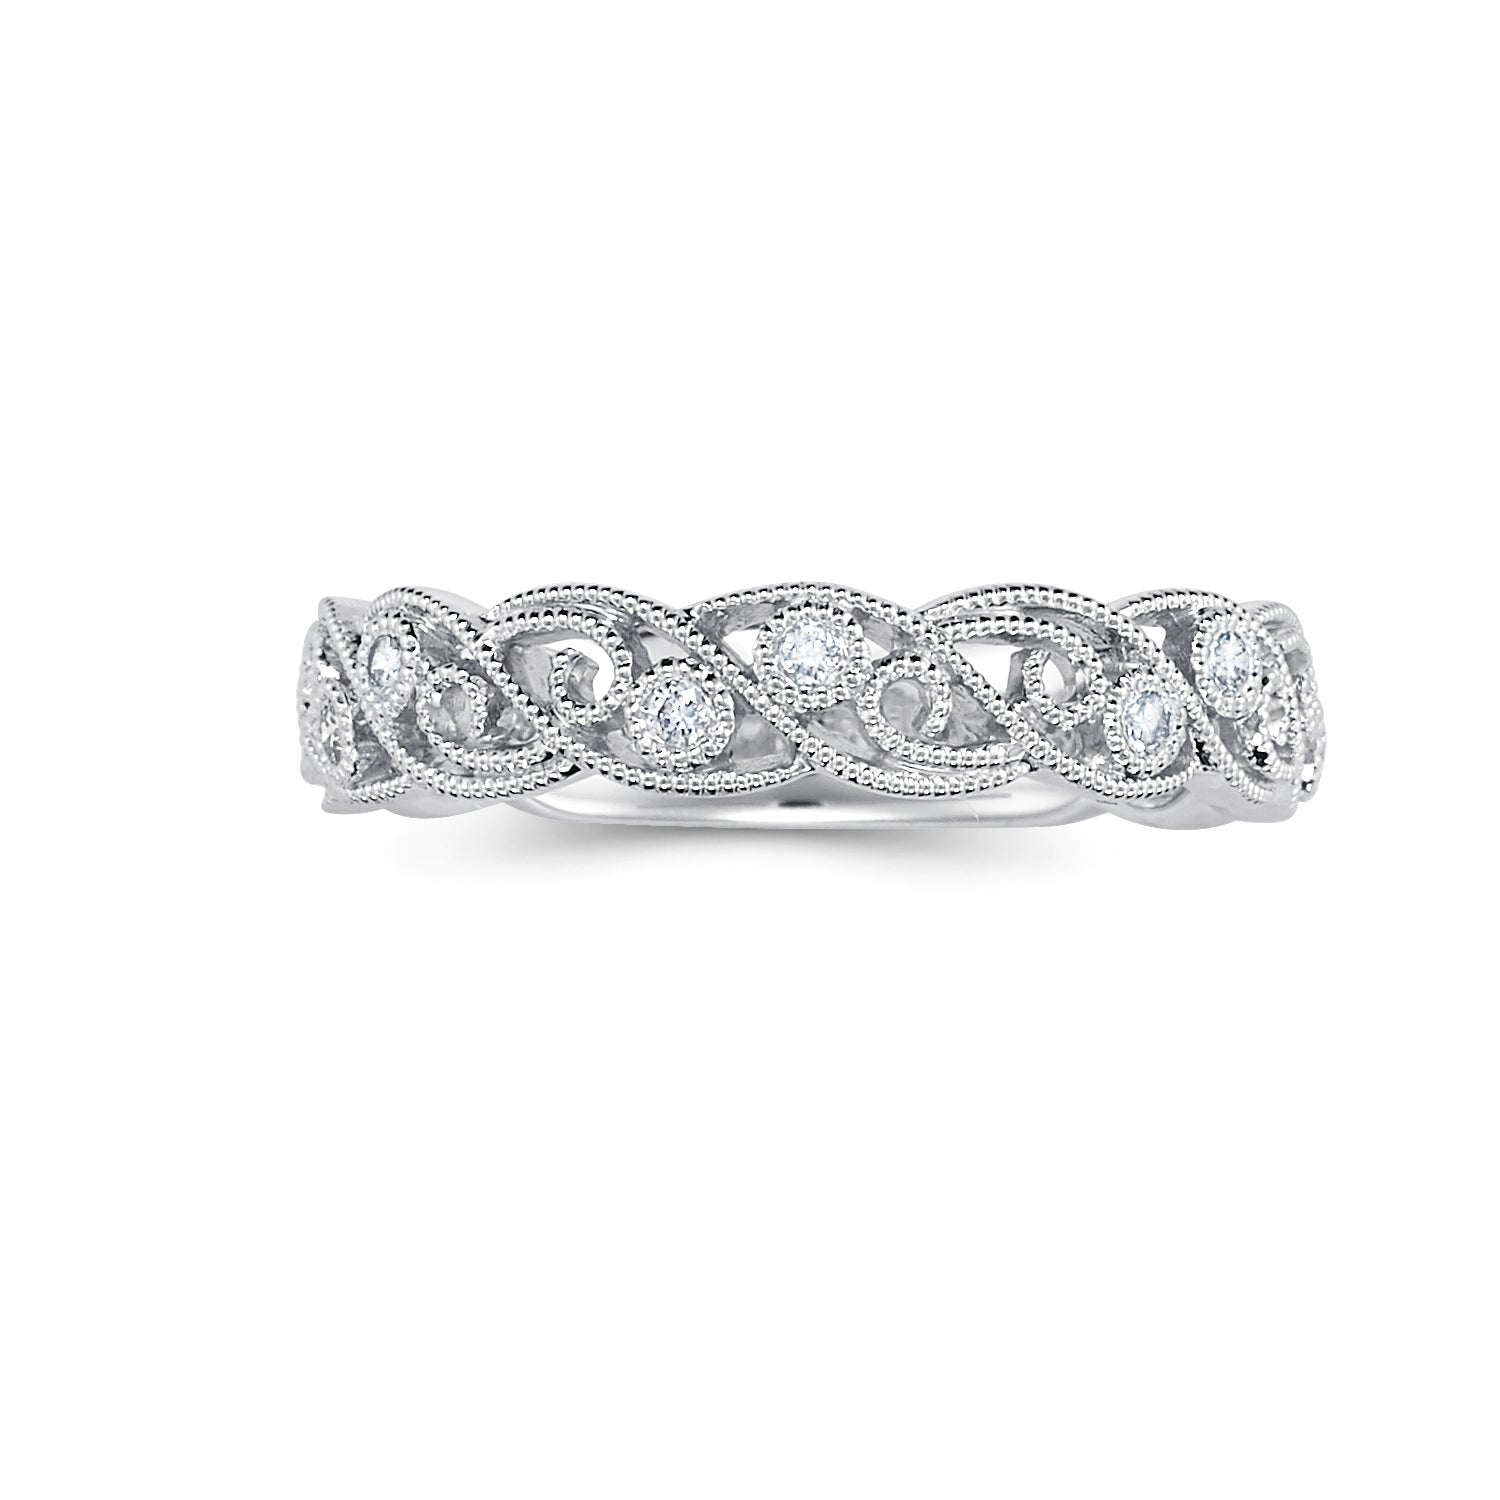 Sold: Antique Style Diamond Band